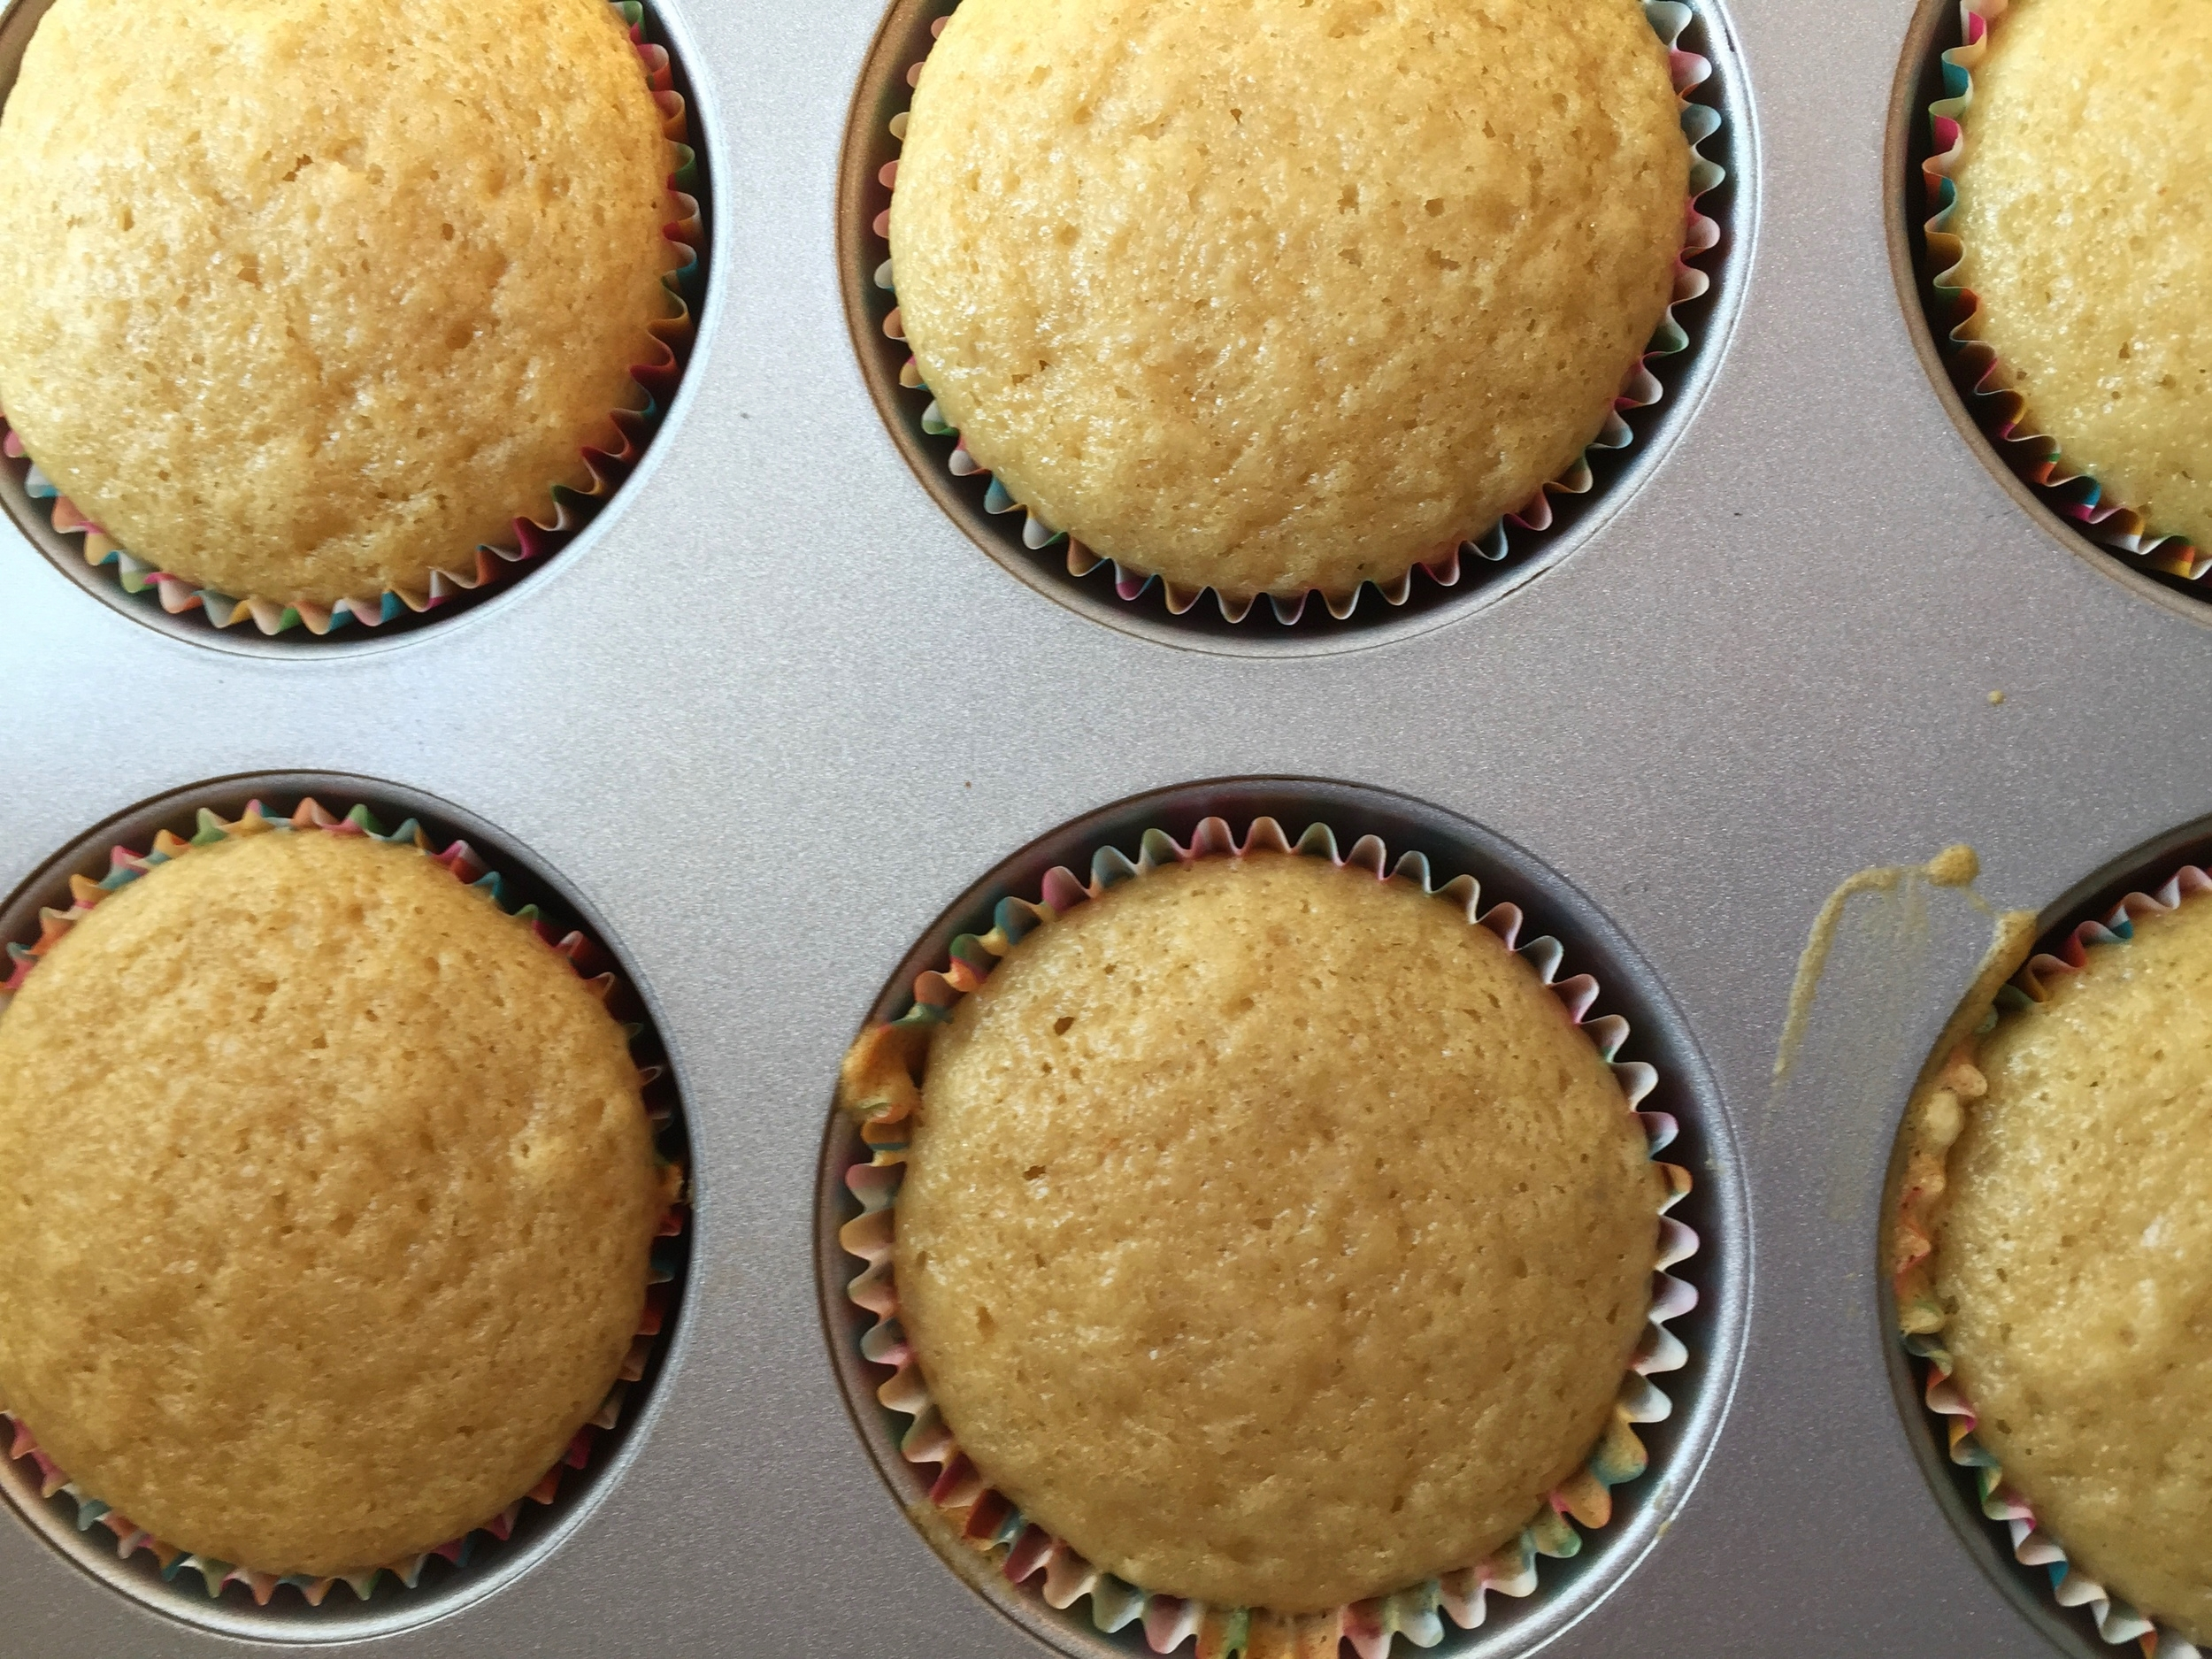 Hard to believe these cupcakes have chamomile in them; they look so unassuming, don't they?